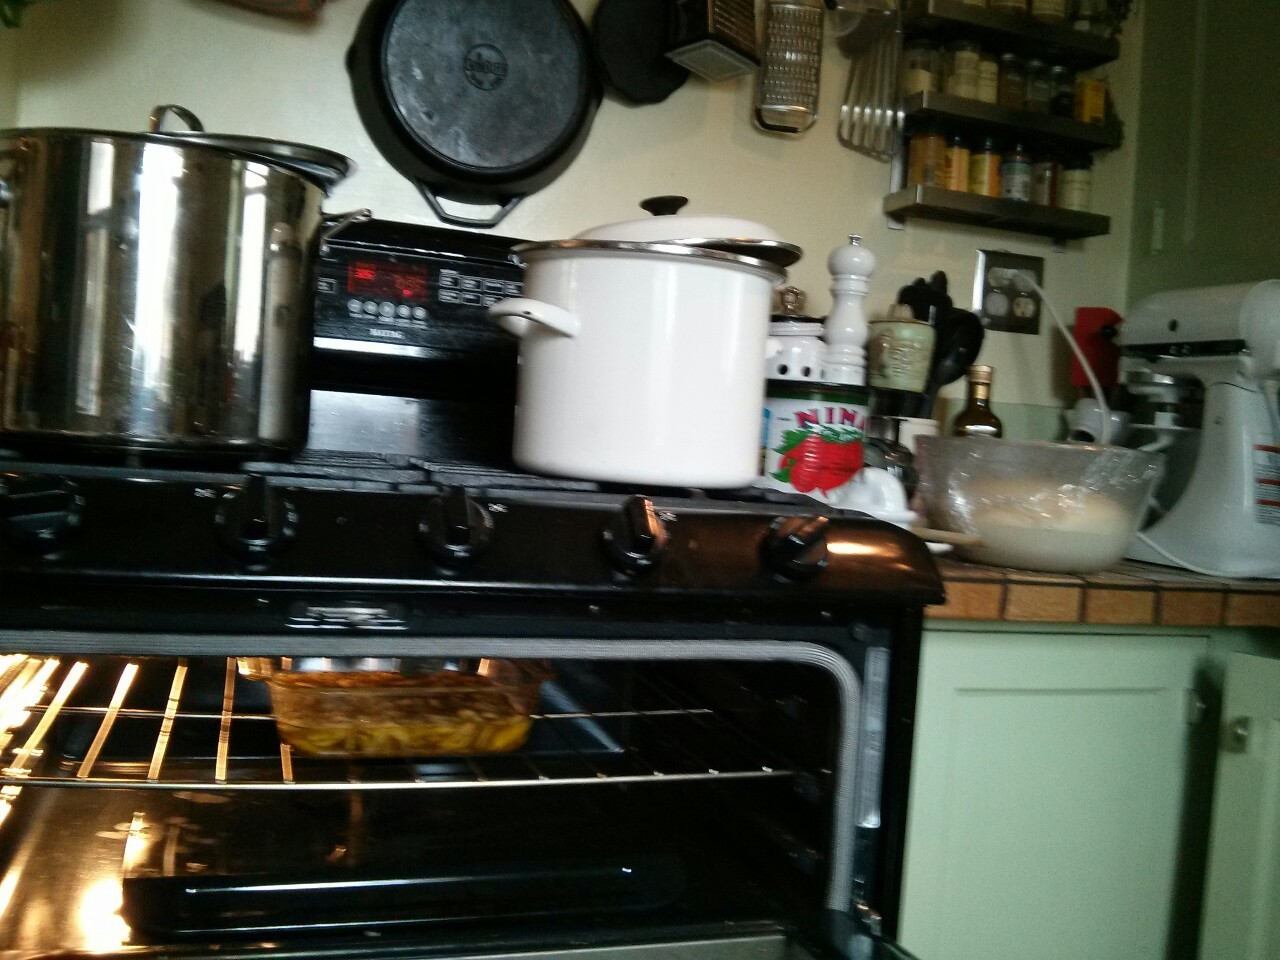 Bread rising, mojo de ajo simmering, veg stock boiling, sauce & meatballs are up next! Taking advantage of this LAST cold day-